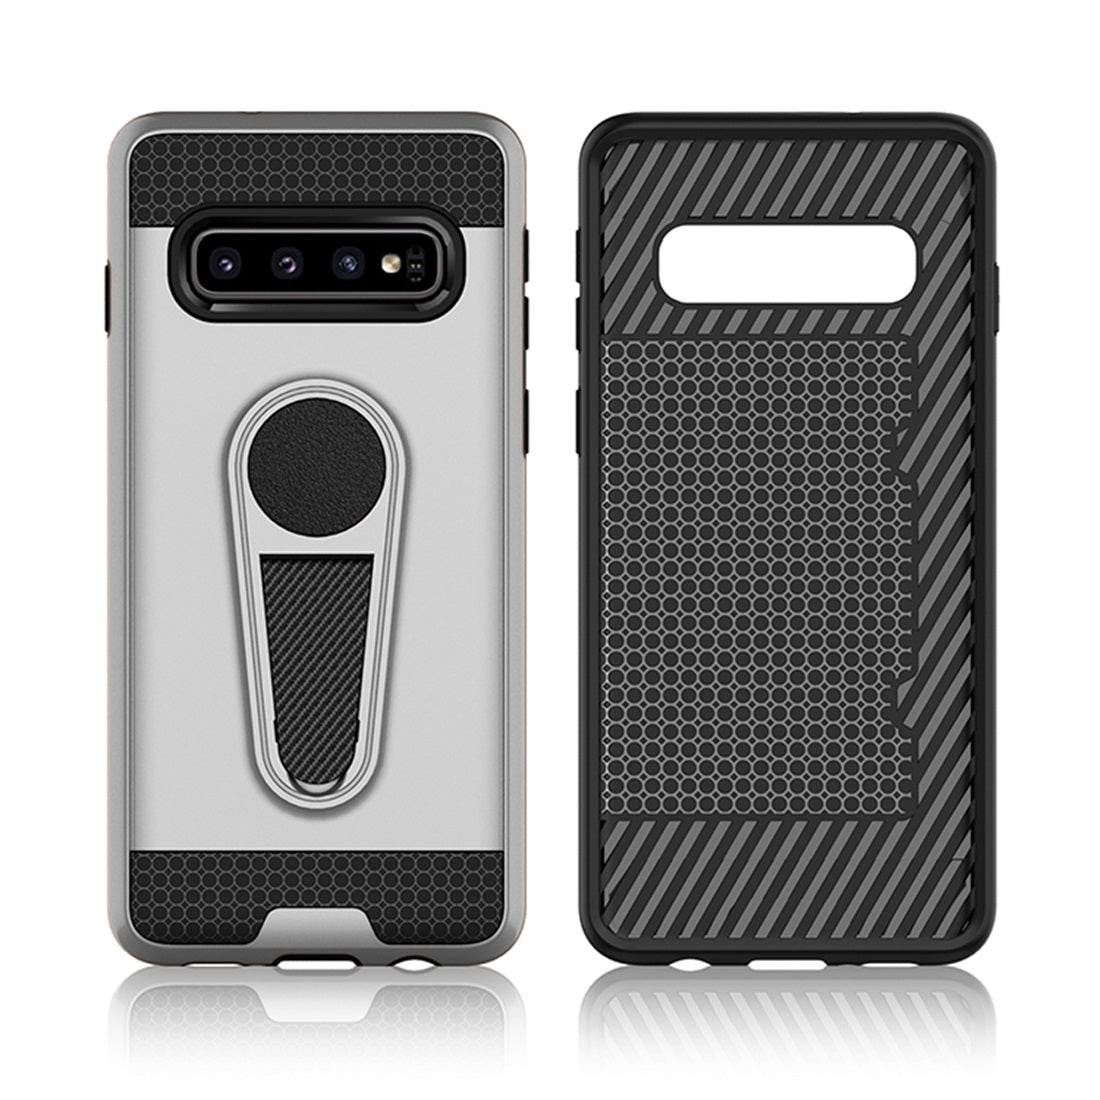 Shockproof Armor TPU + PC Protective Case for Galaxy S10 Plus, with Holder (Black)